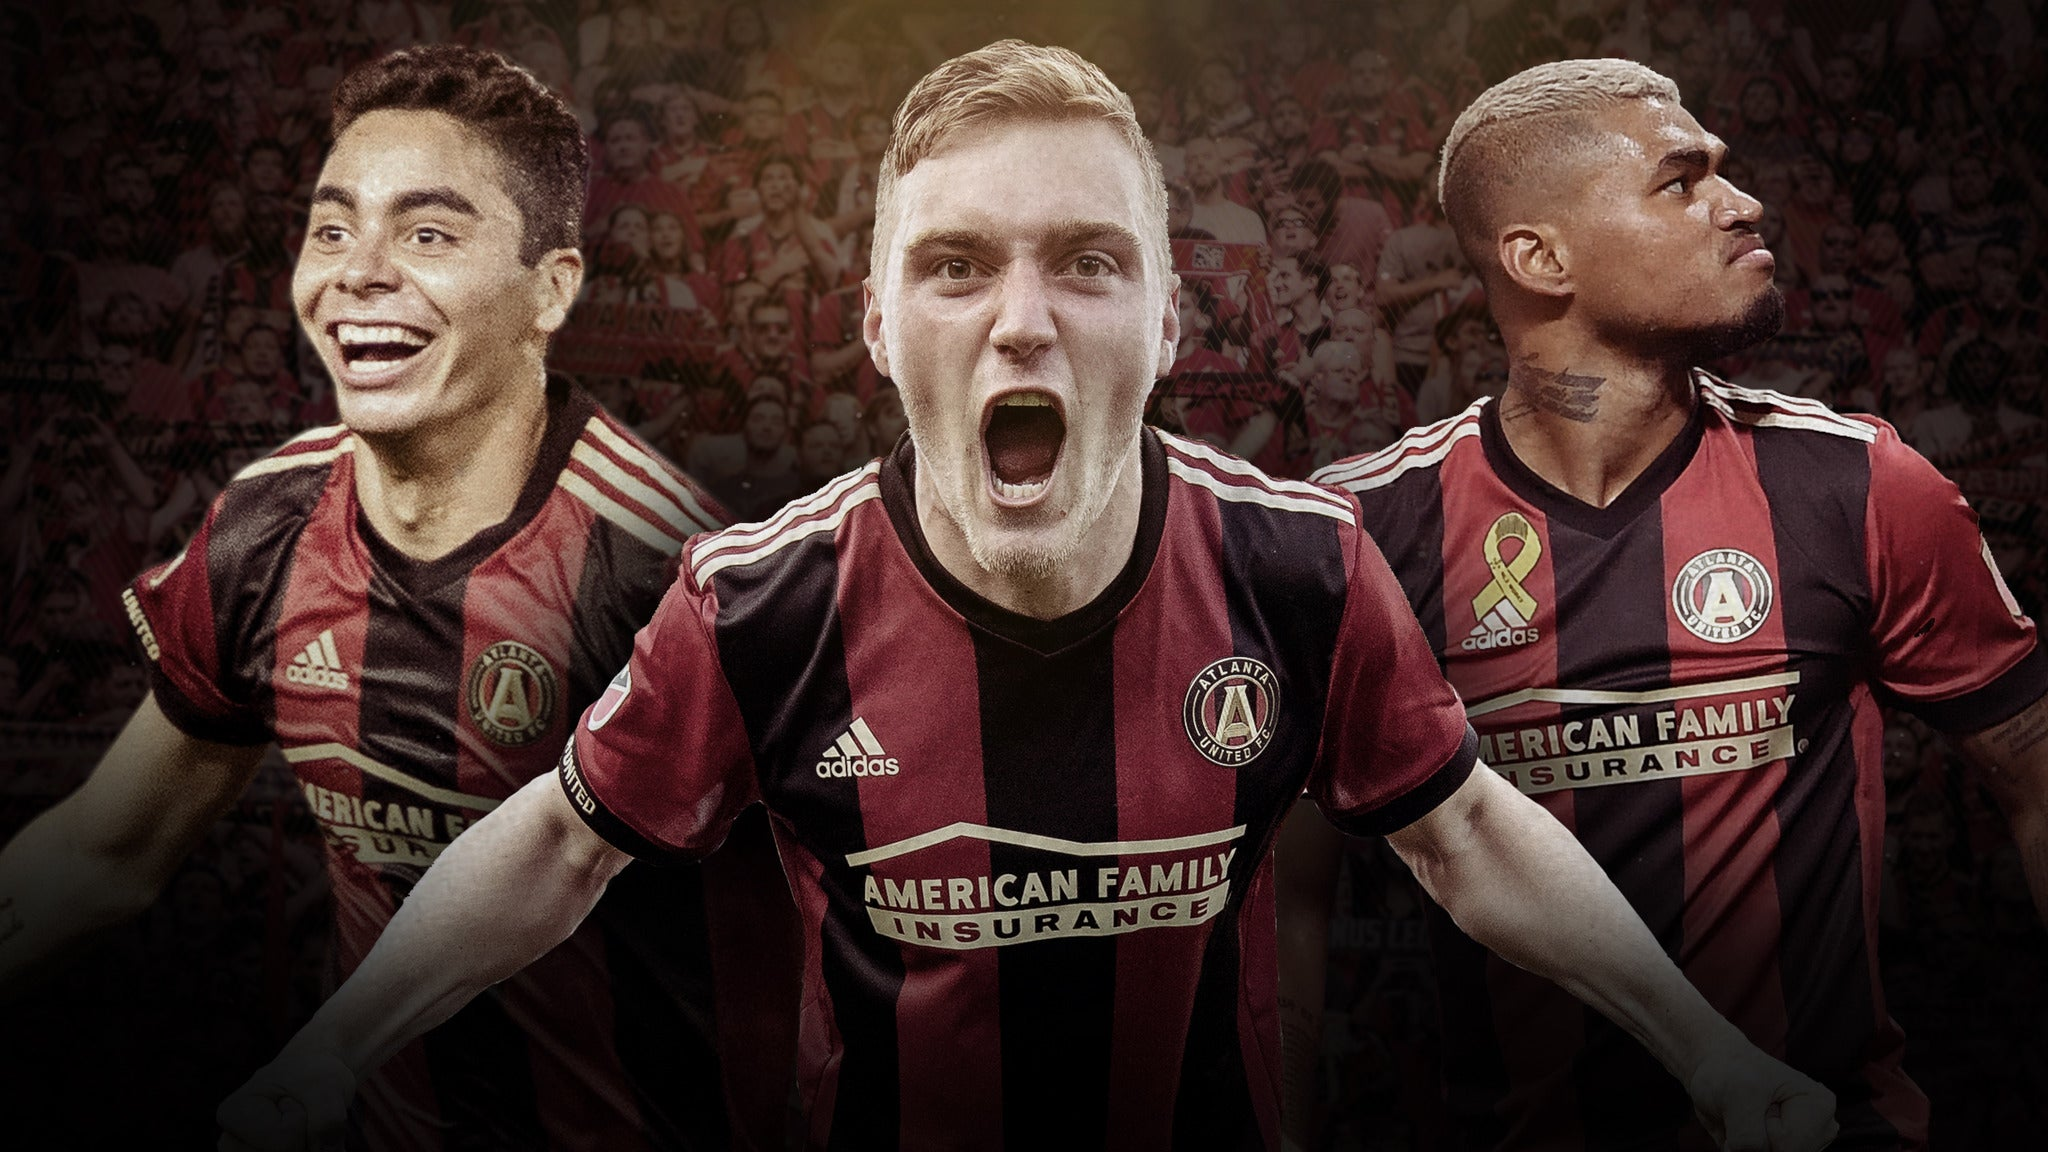 Atlanta United FC vs. Chicago Fire at Mercedes-Benz Stadium